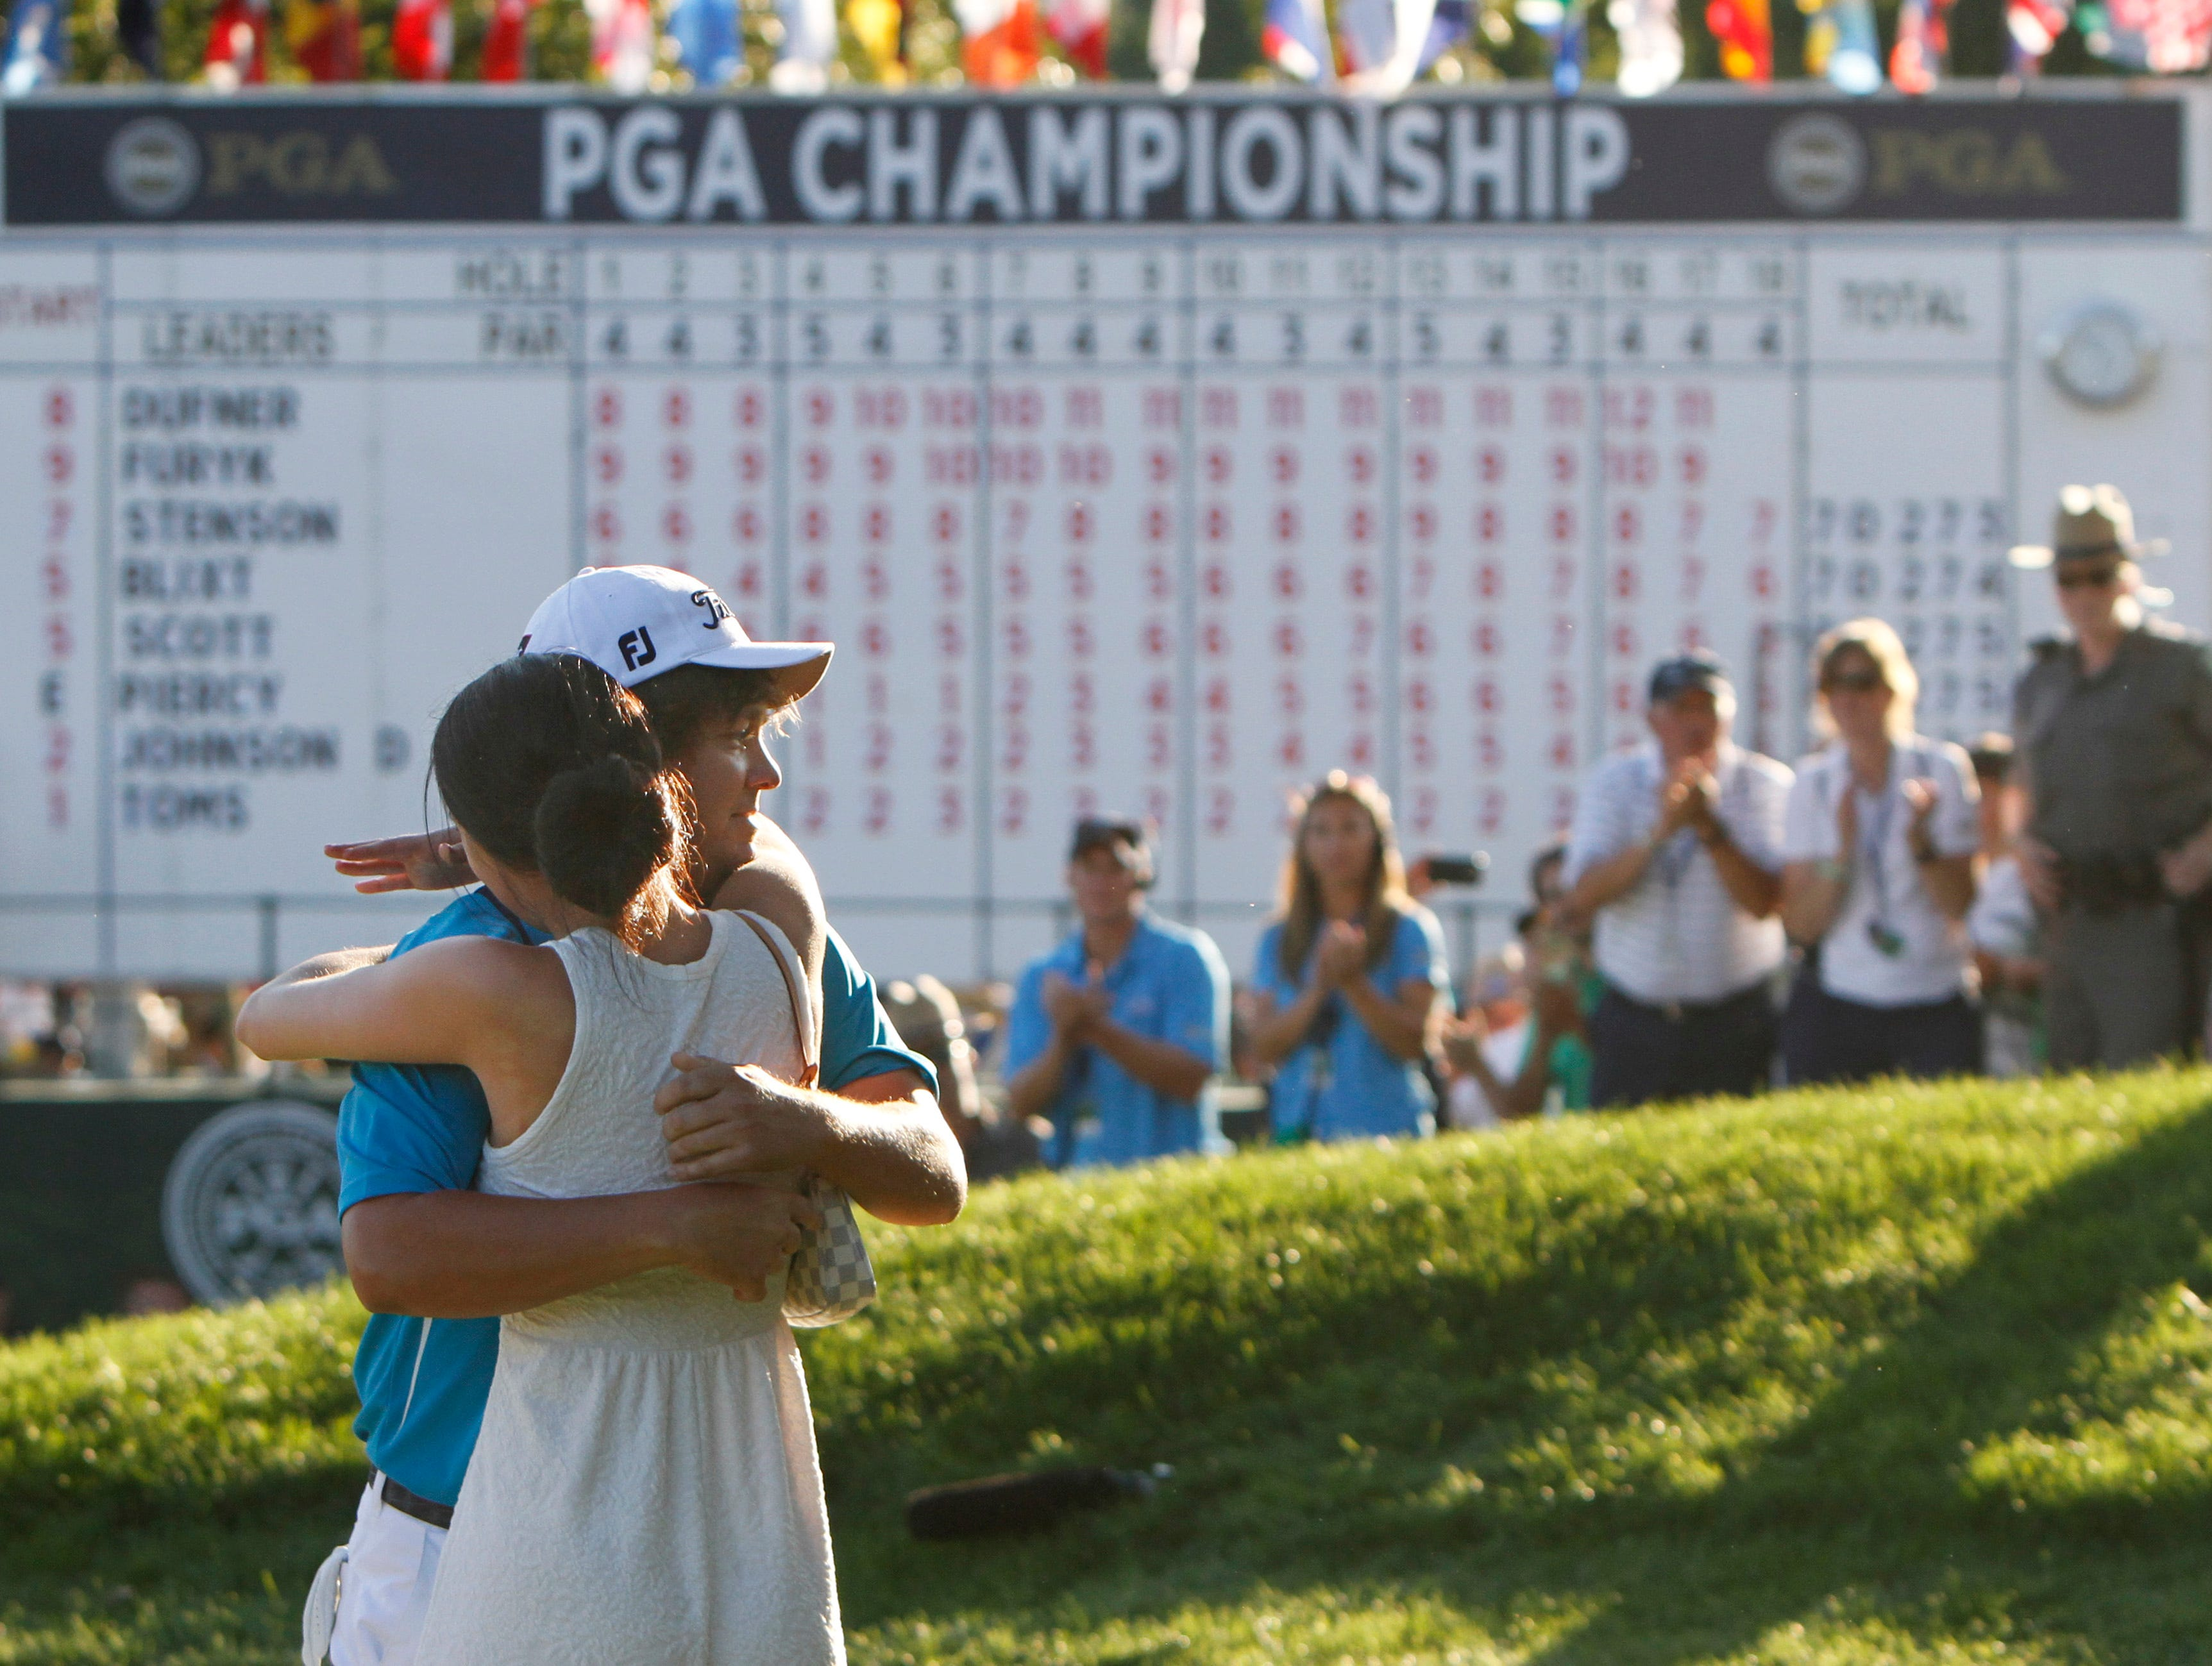 Jason Dufner hugs wife on the 18th green following his two stroke victory at the final round of the 95th PGA Championship Sunday, Aug. 11, 2013 at Oak Hill Country Club in Pittsford.